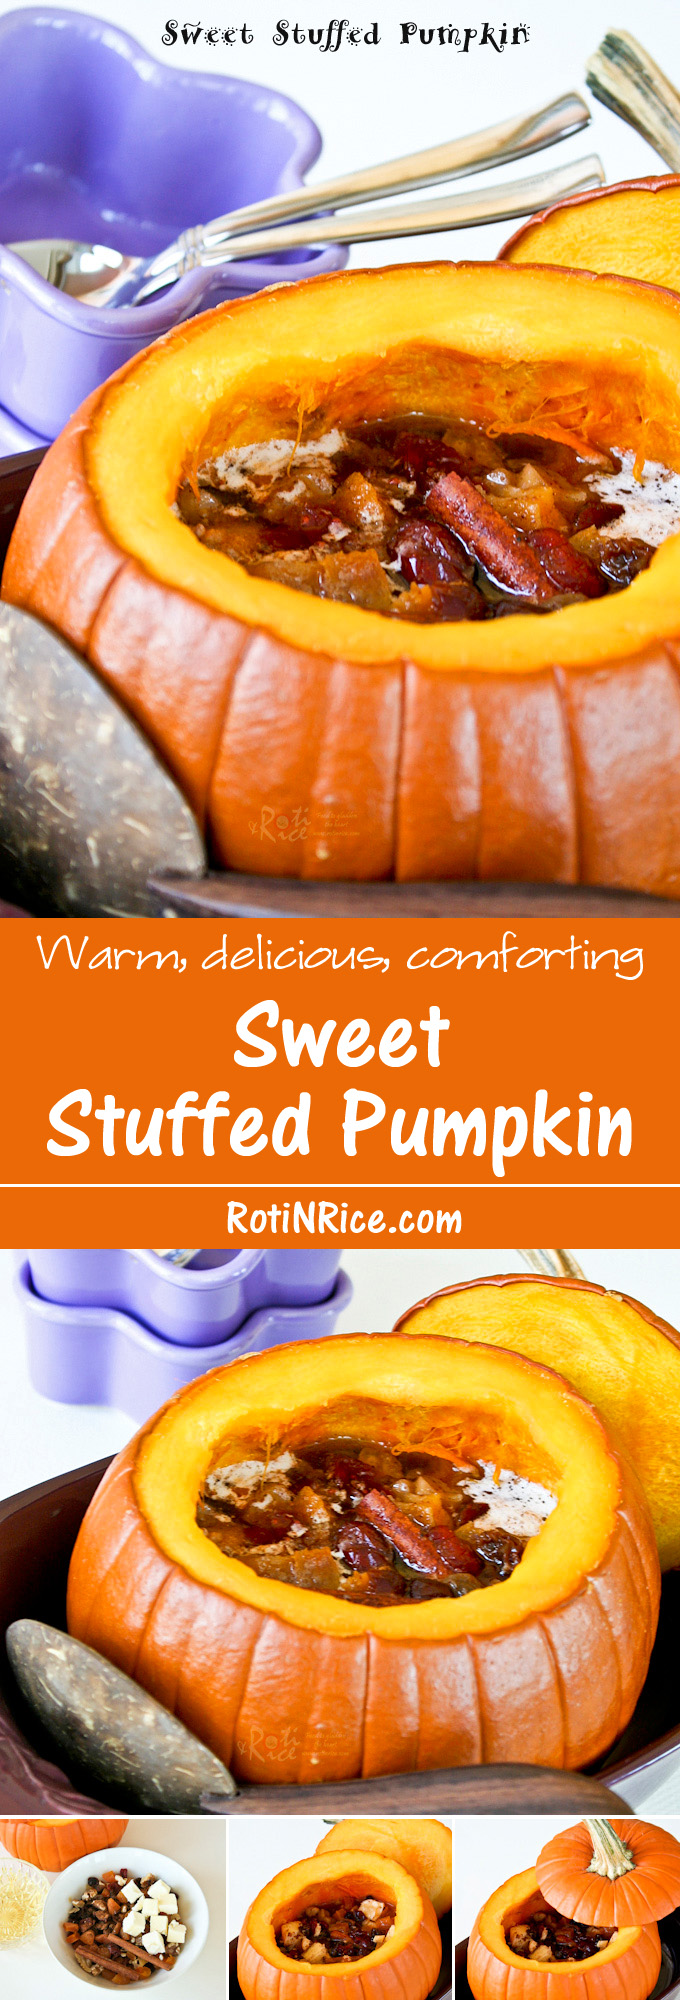 Impress family and friends with this hollowed out Sweet Stuffed Pumpkin dessert filled with mixed dried fruits and spices. It is warm, delicious, and perfect for the holidays. | RotiNRice.com